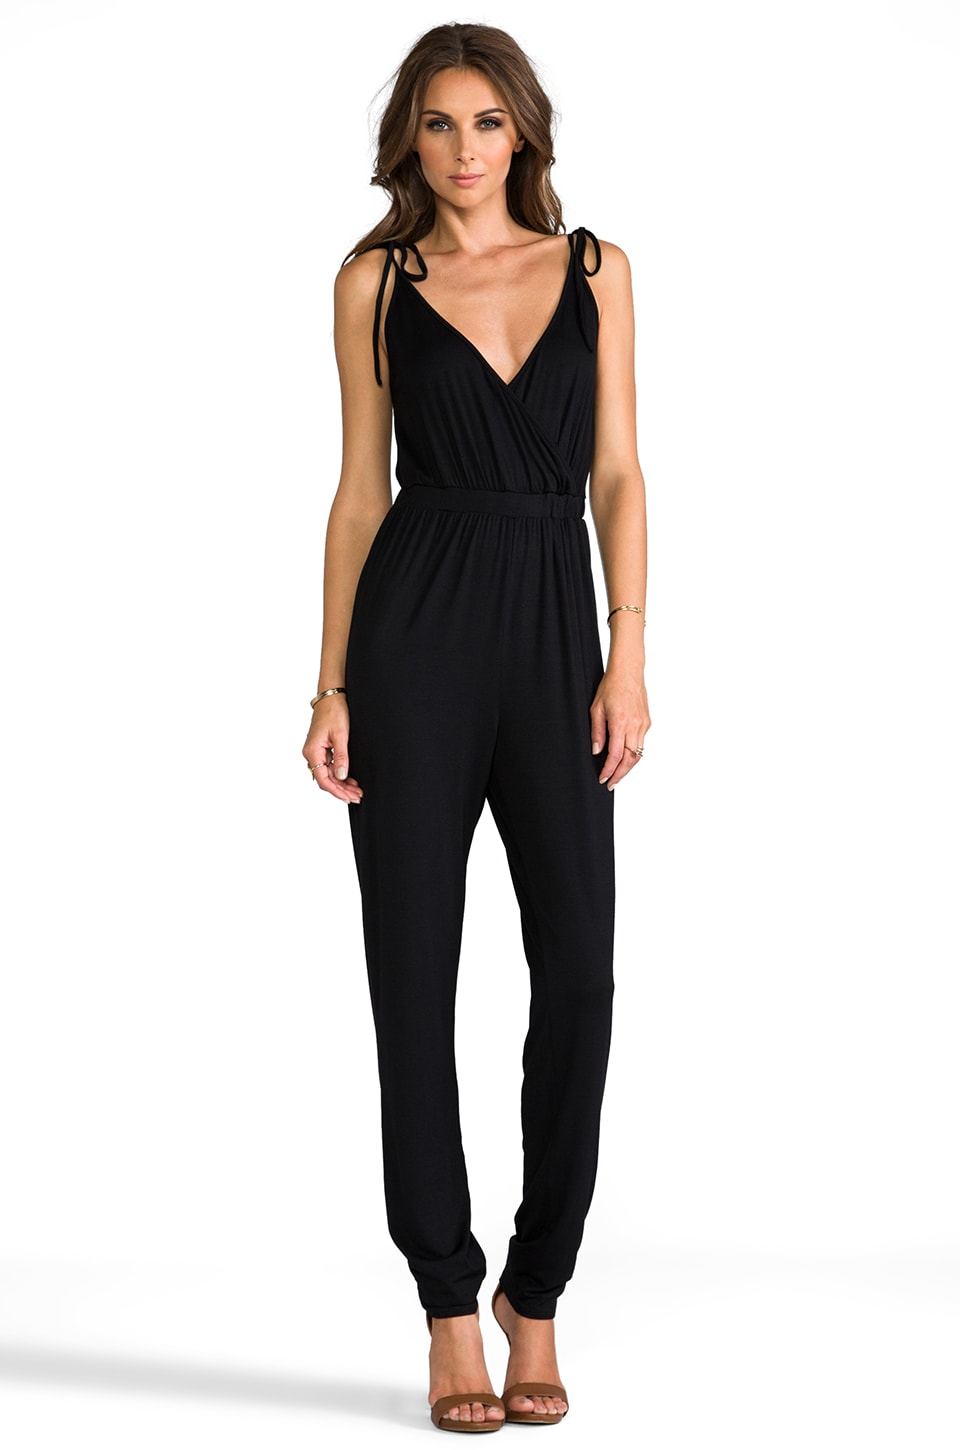 Rachel Pally Stacey Jumpsuit in Black